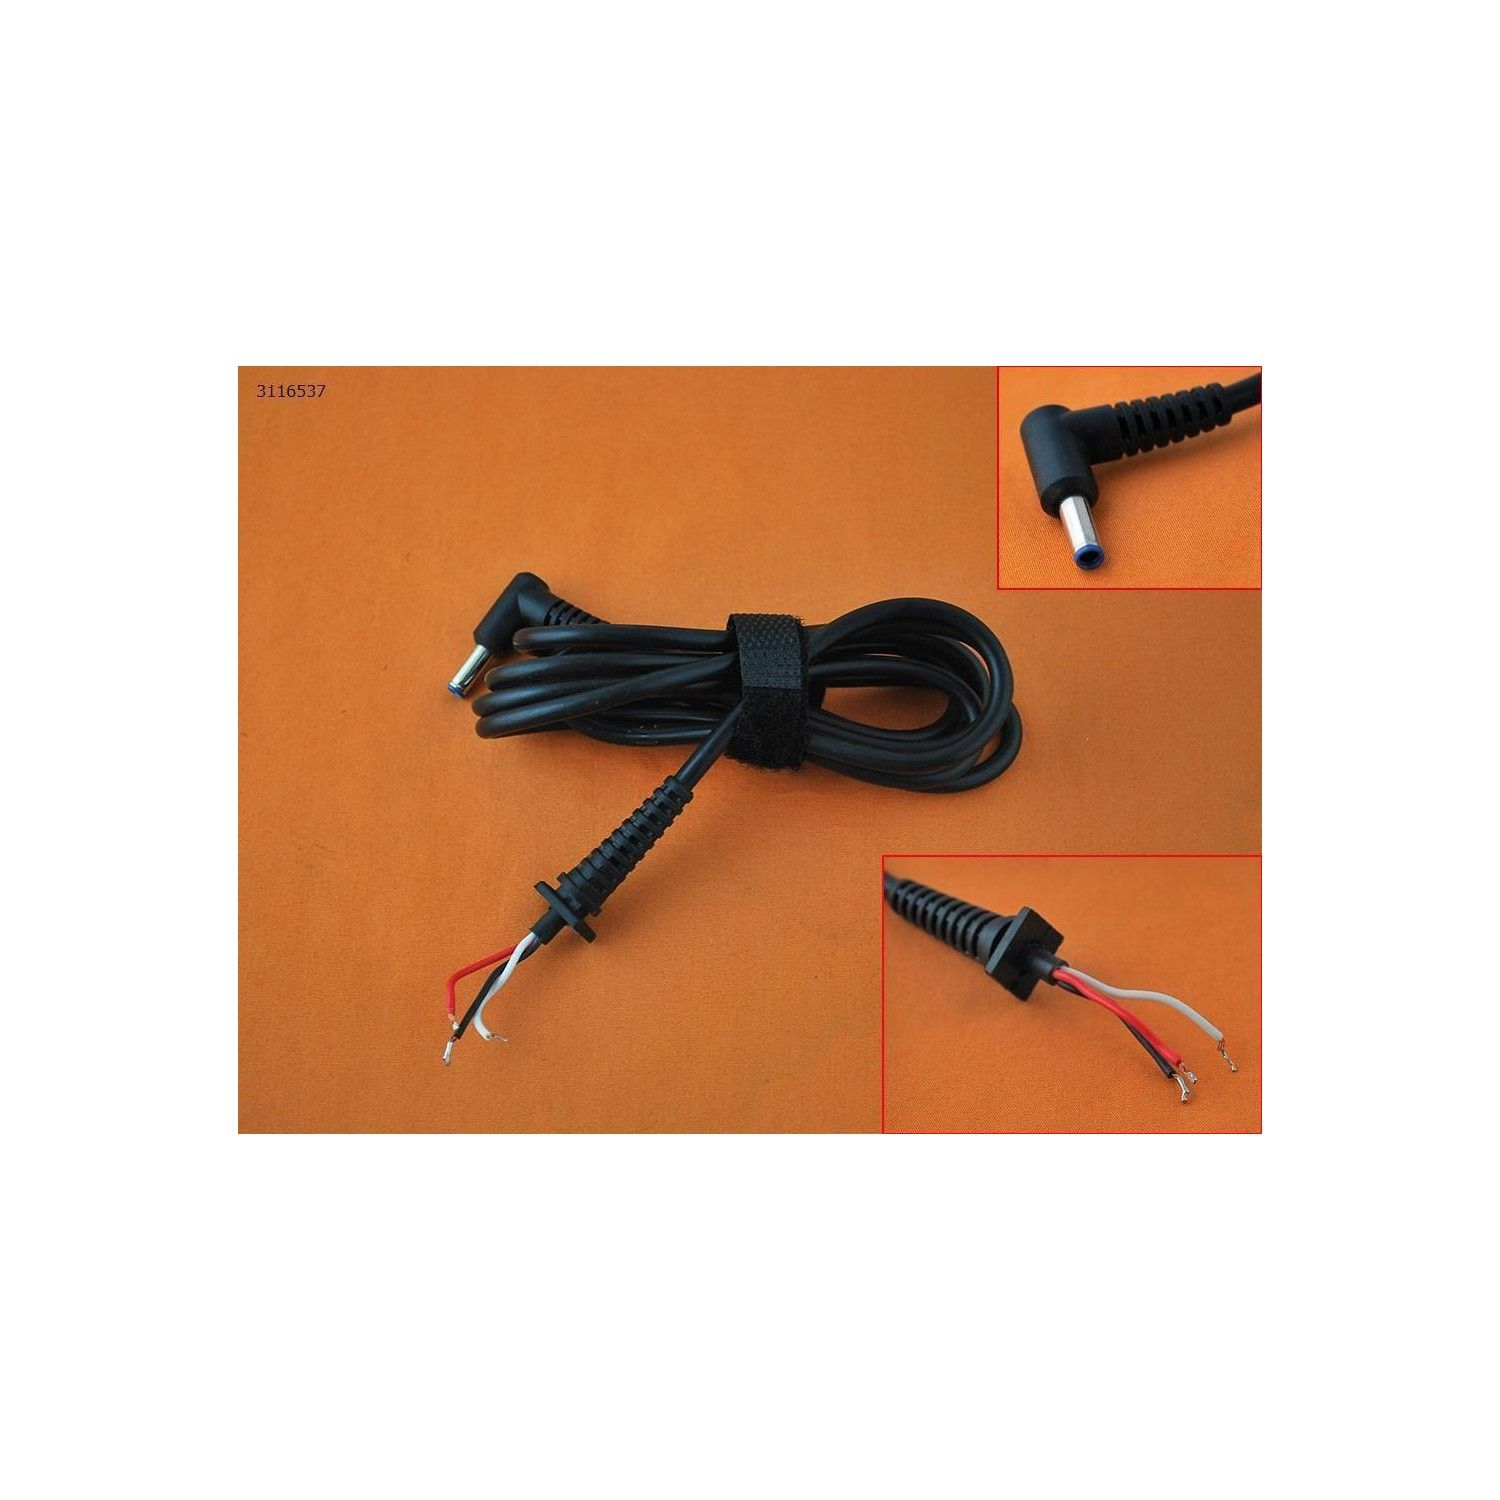 CABLE JACK DC 4.5X3.0MM K217